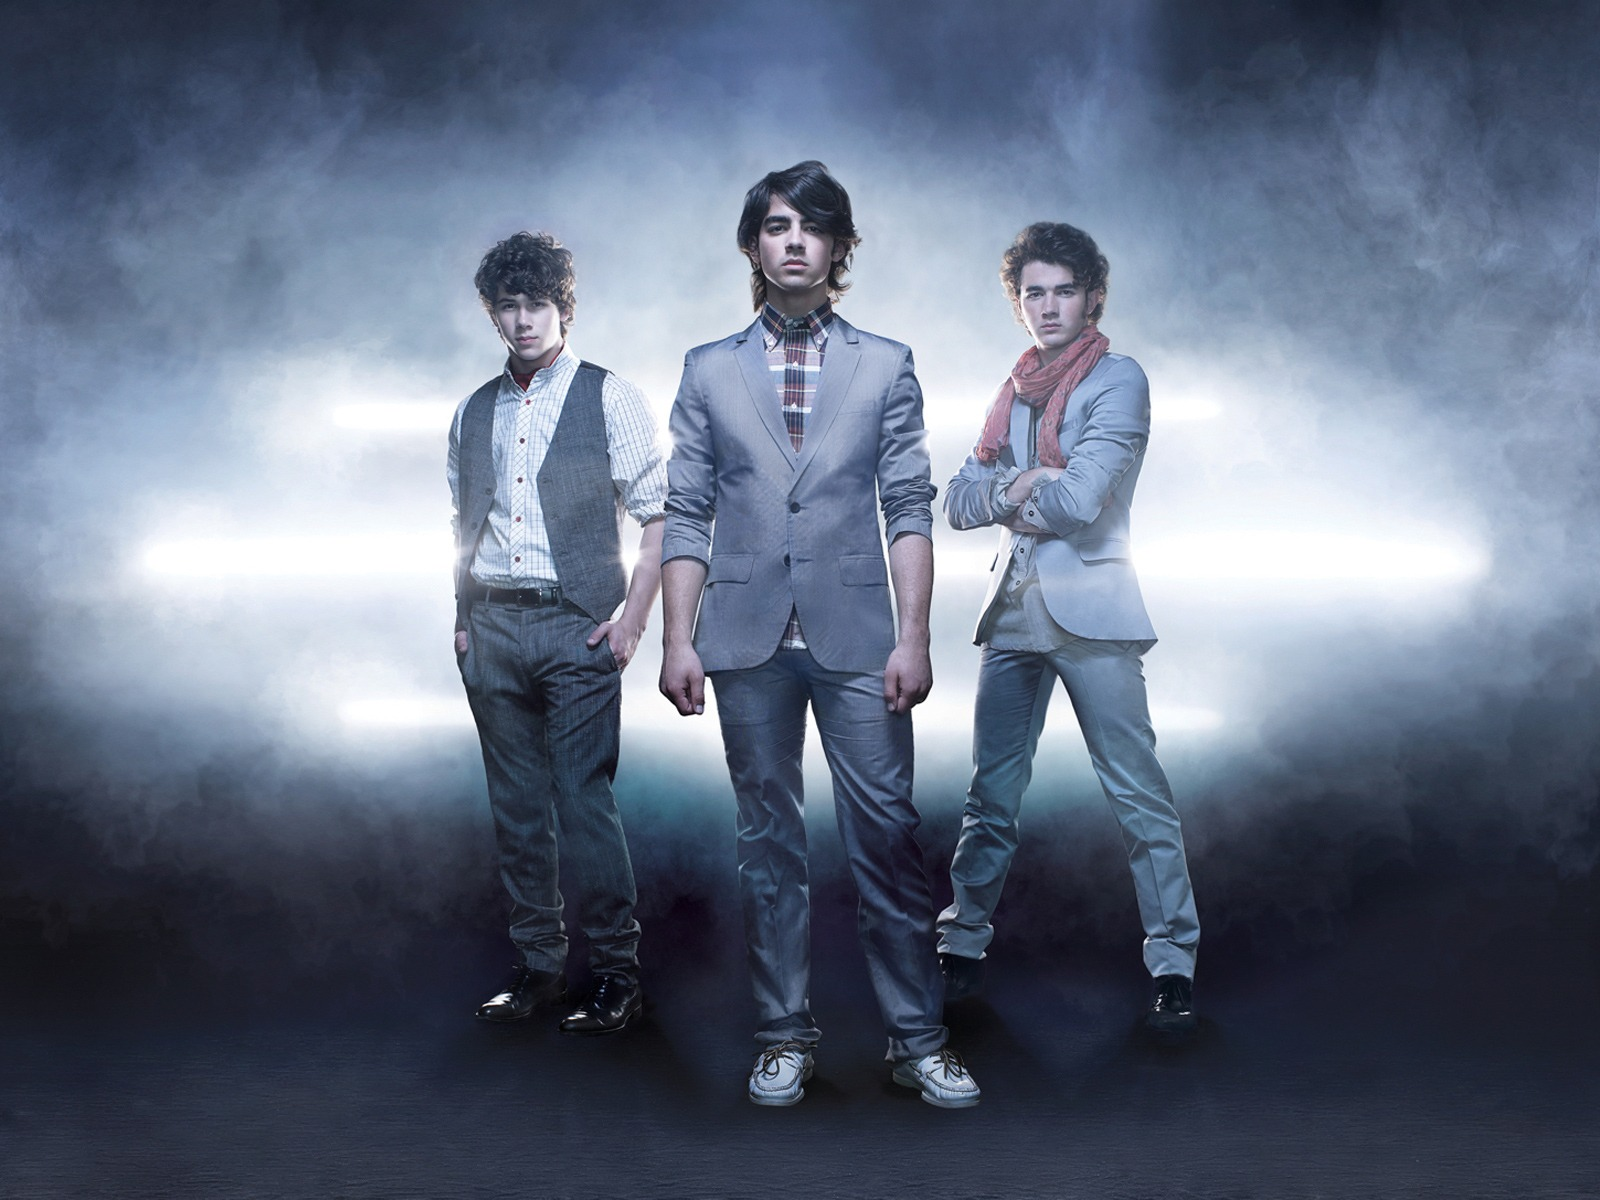 Hollywood: Jonas Brothers Rock Band Wallpapers 2012